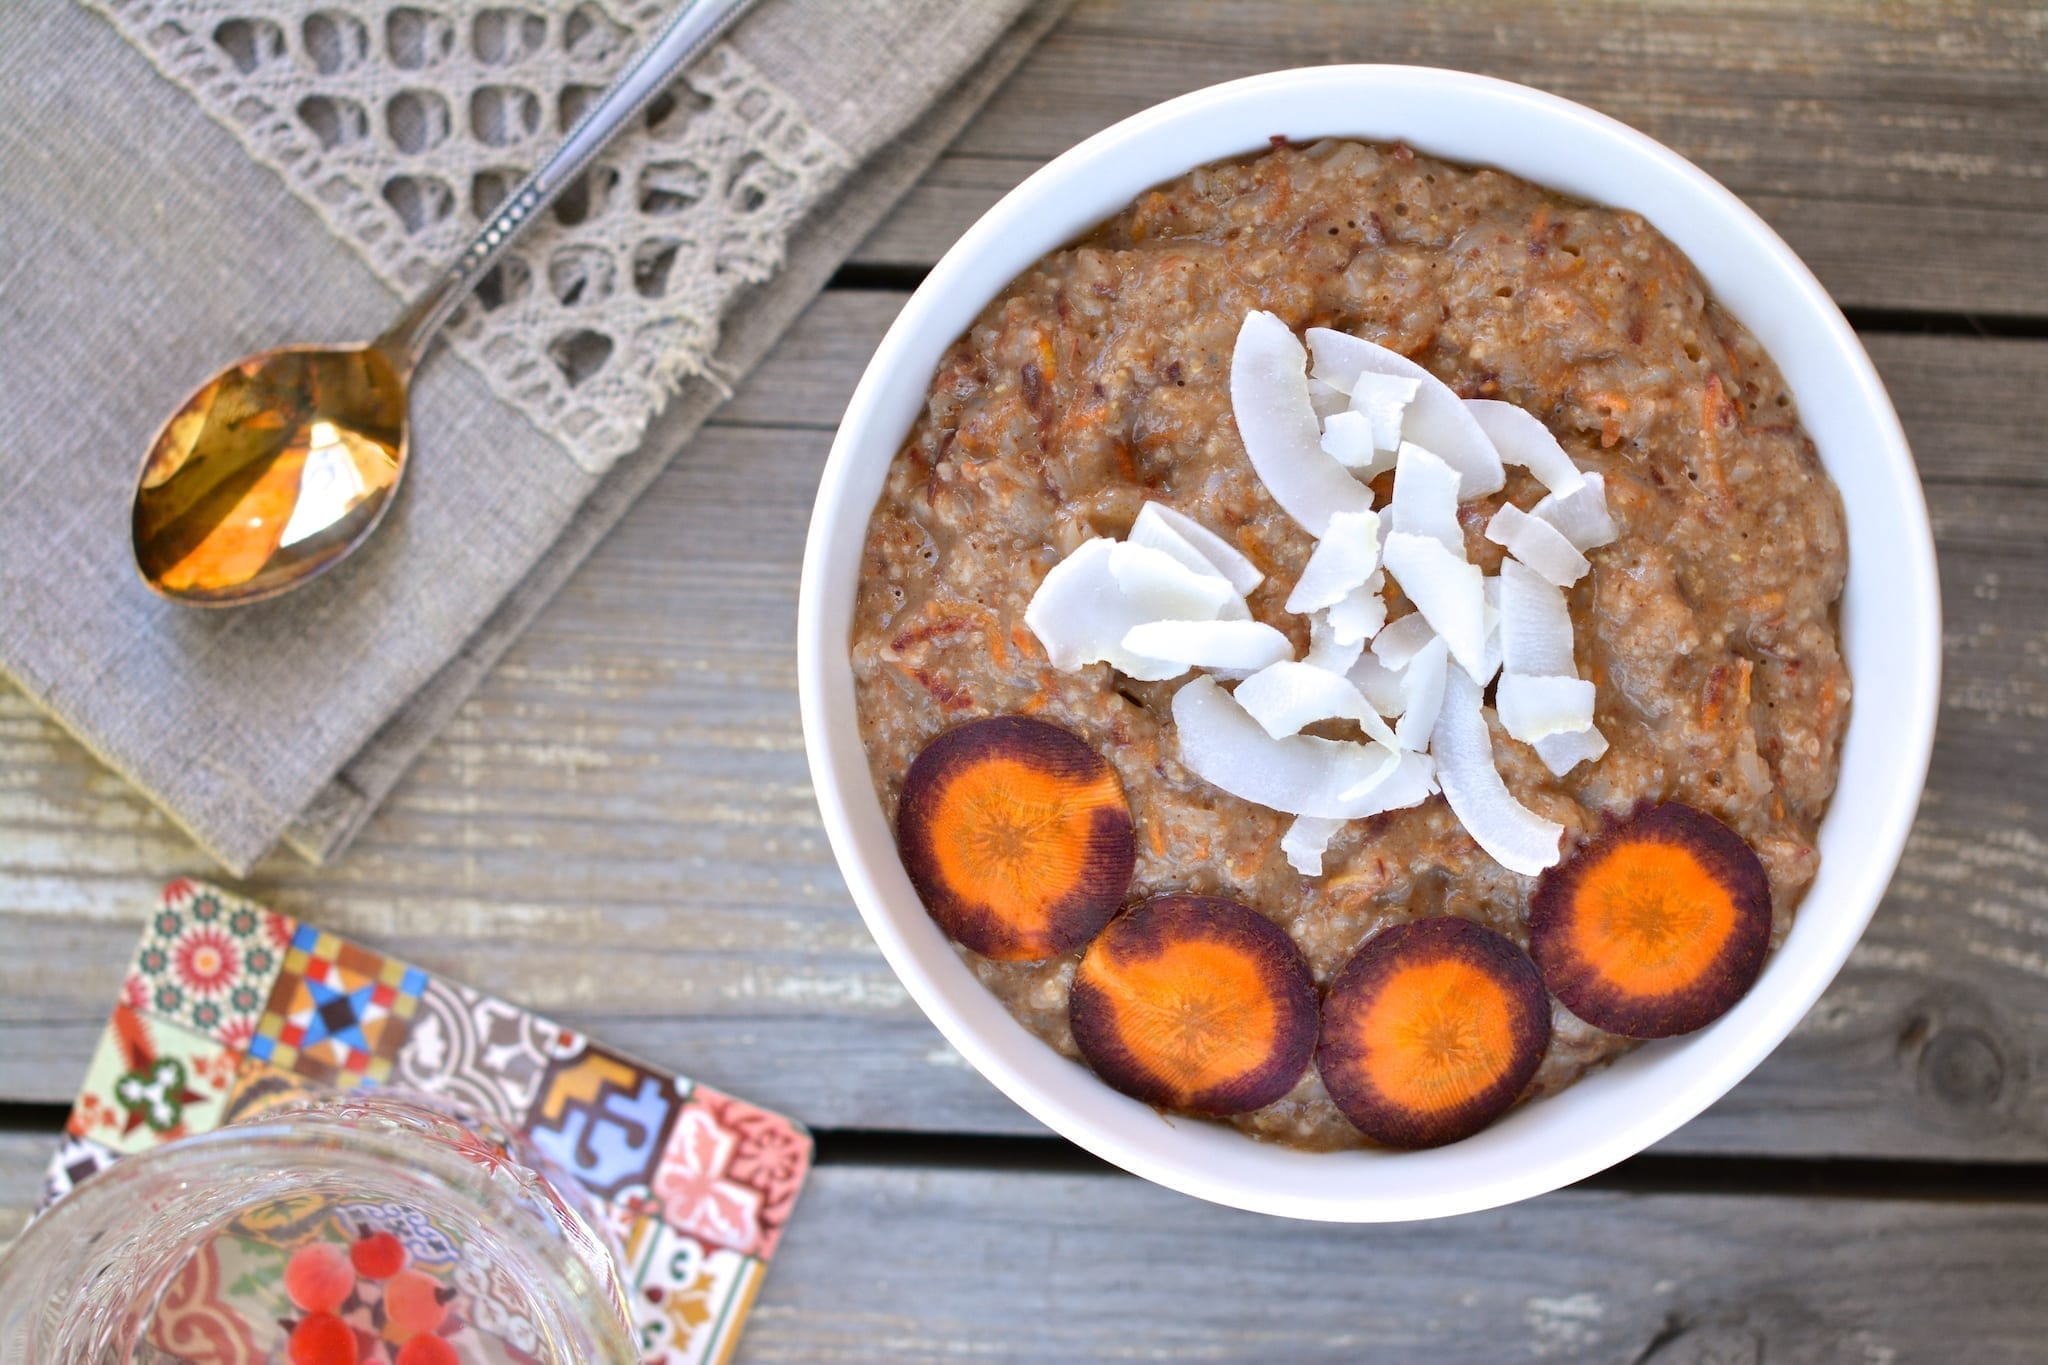 Porridge, Oat Bran-Buckwheat-Carrot, vegan candida diet meal plans